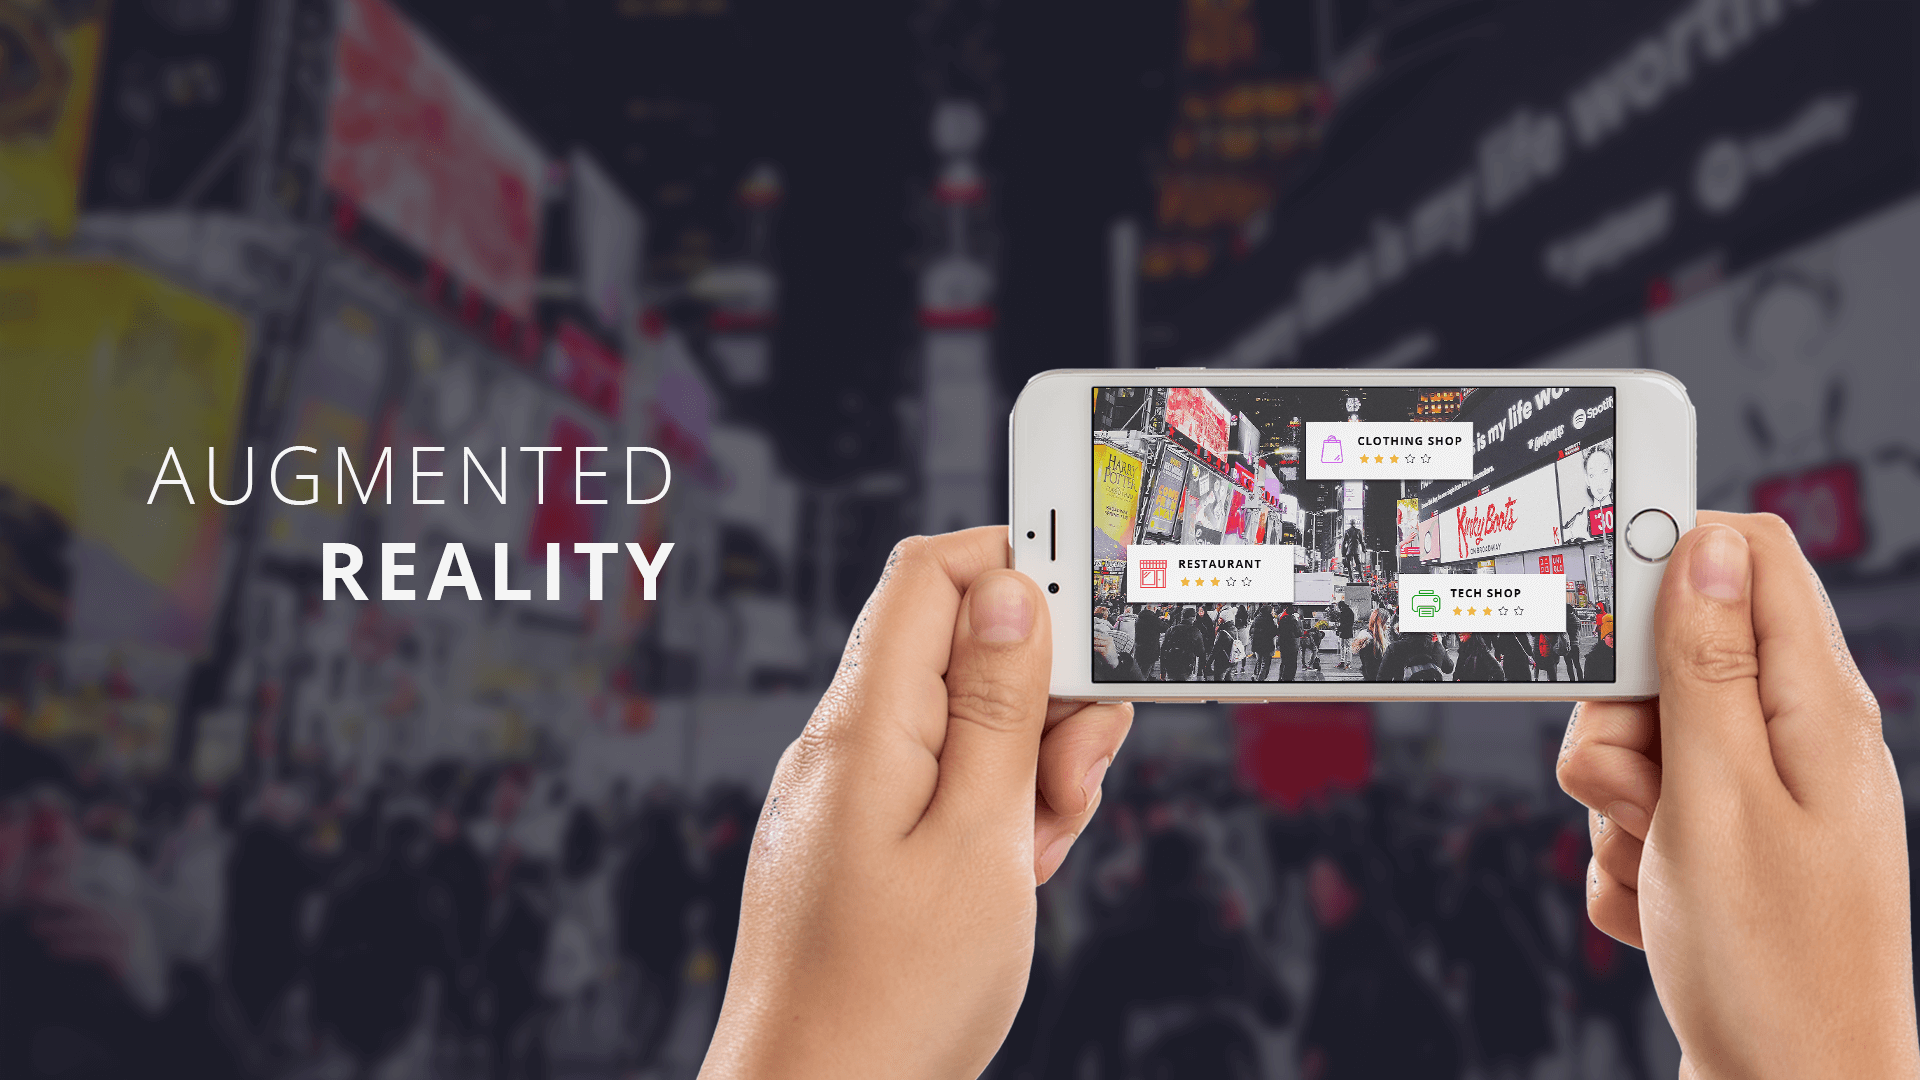 Augmented Reality: Investigation from the Perspective of a Mobile Developer | Appnovation